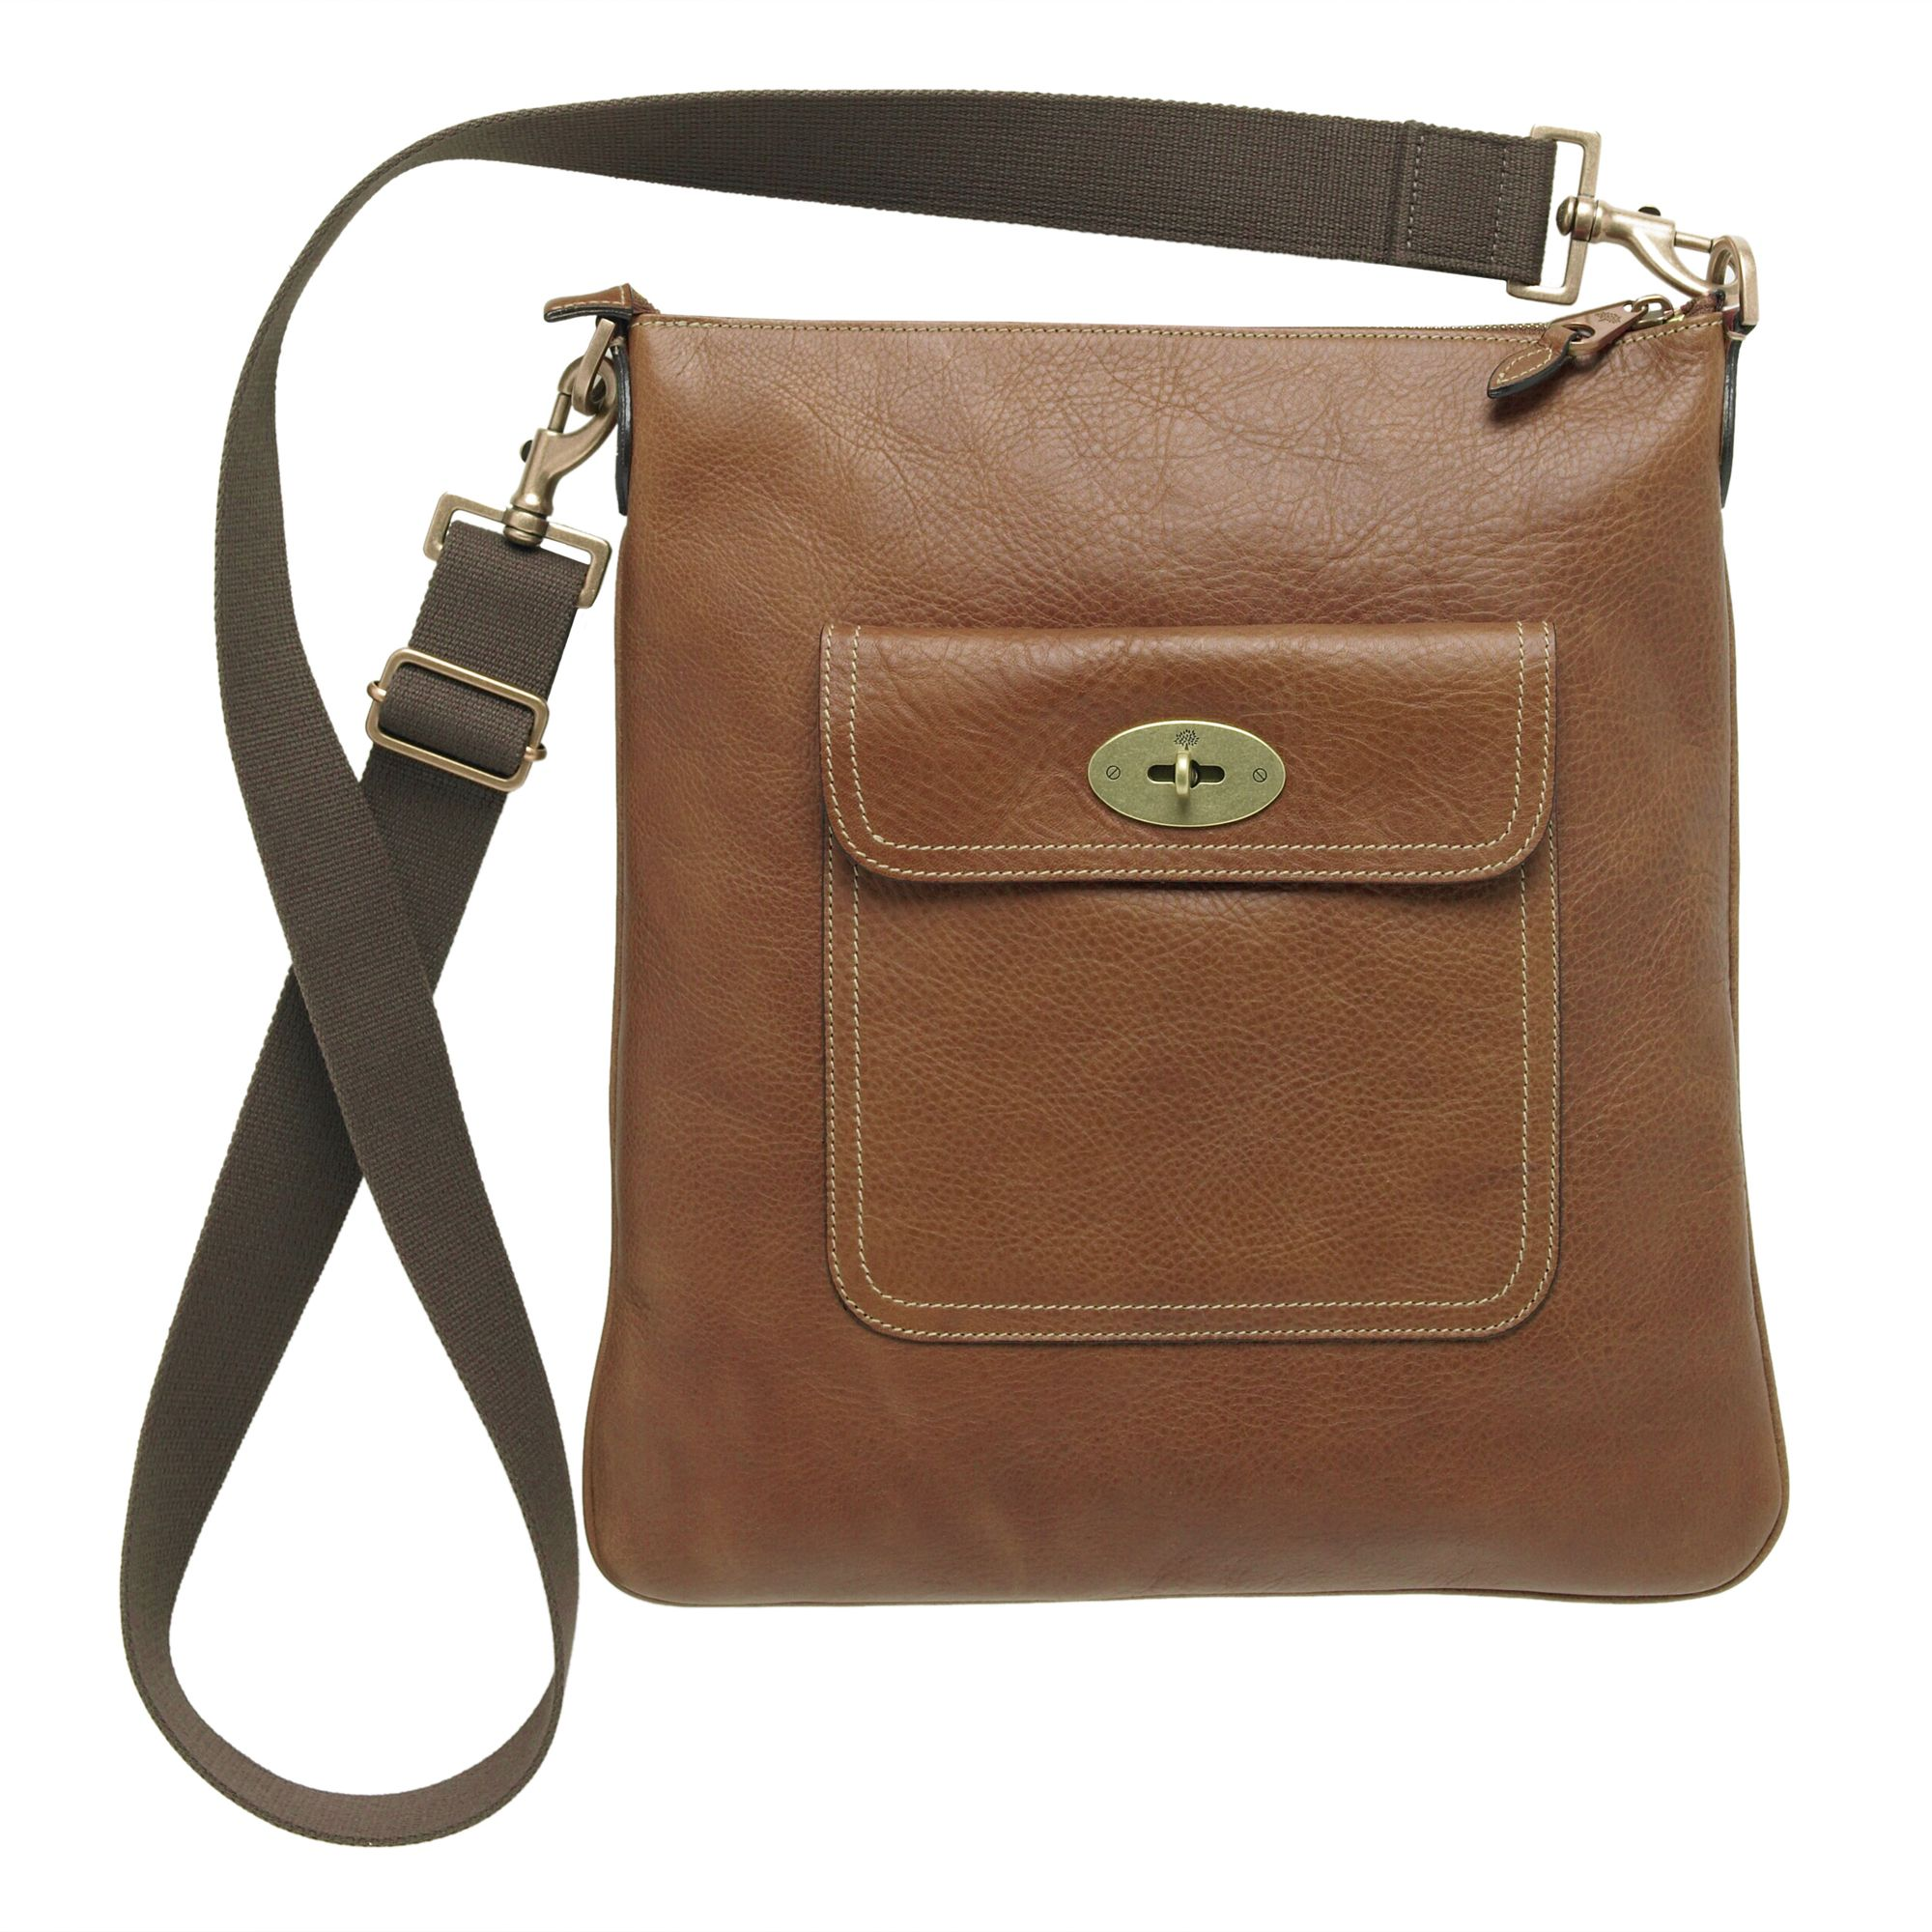 ... promo code lyst mulberry seth messenger bag in brown dfa72 07b61 f81051273935b